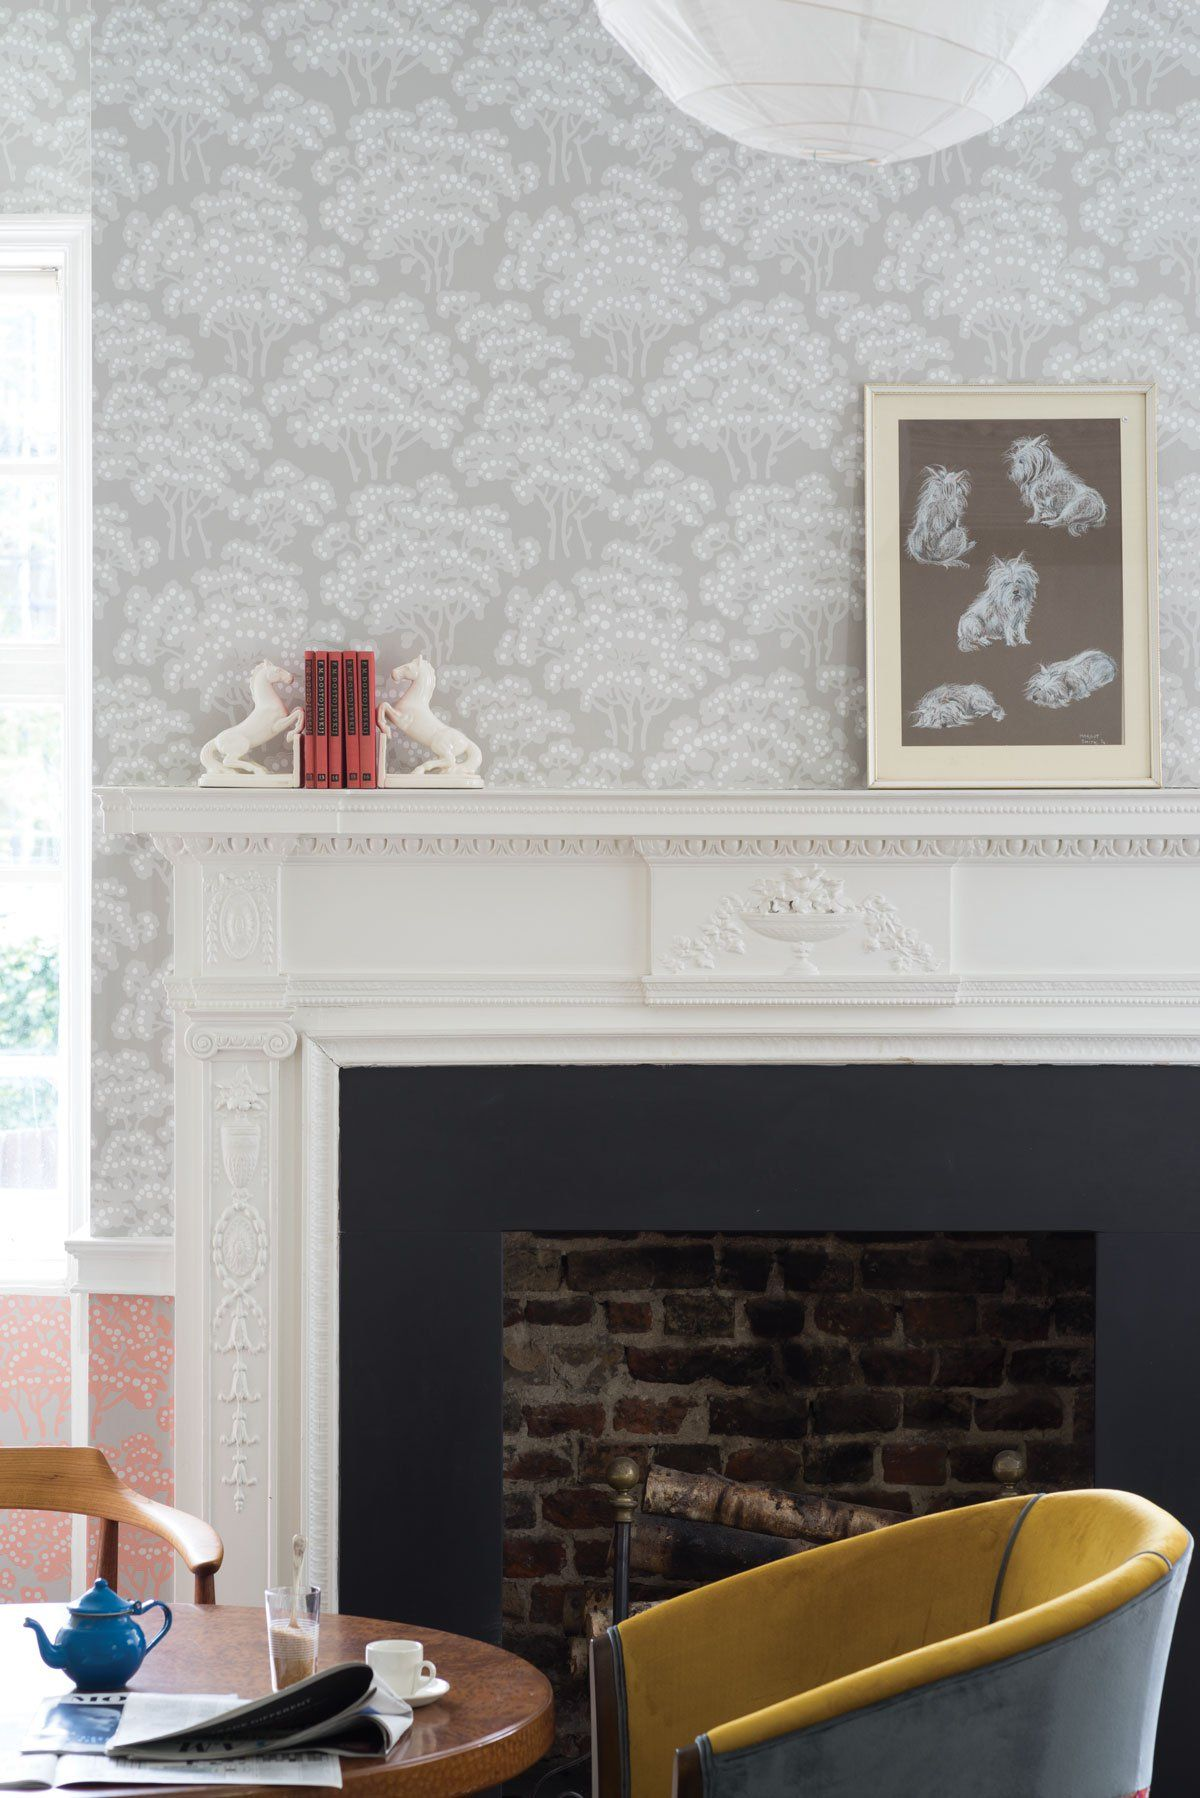 Hornbeam Farrow ball, Floral print wallpaper